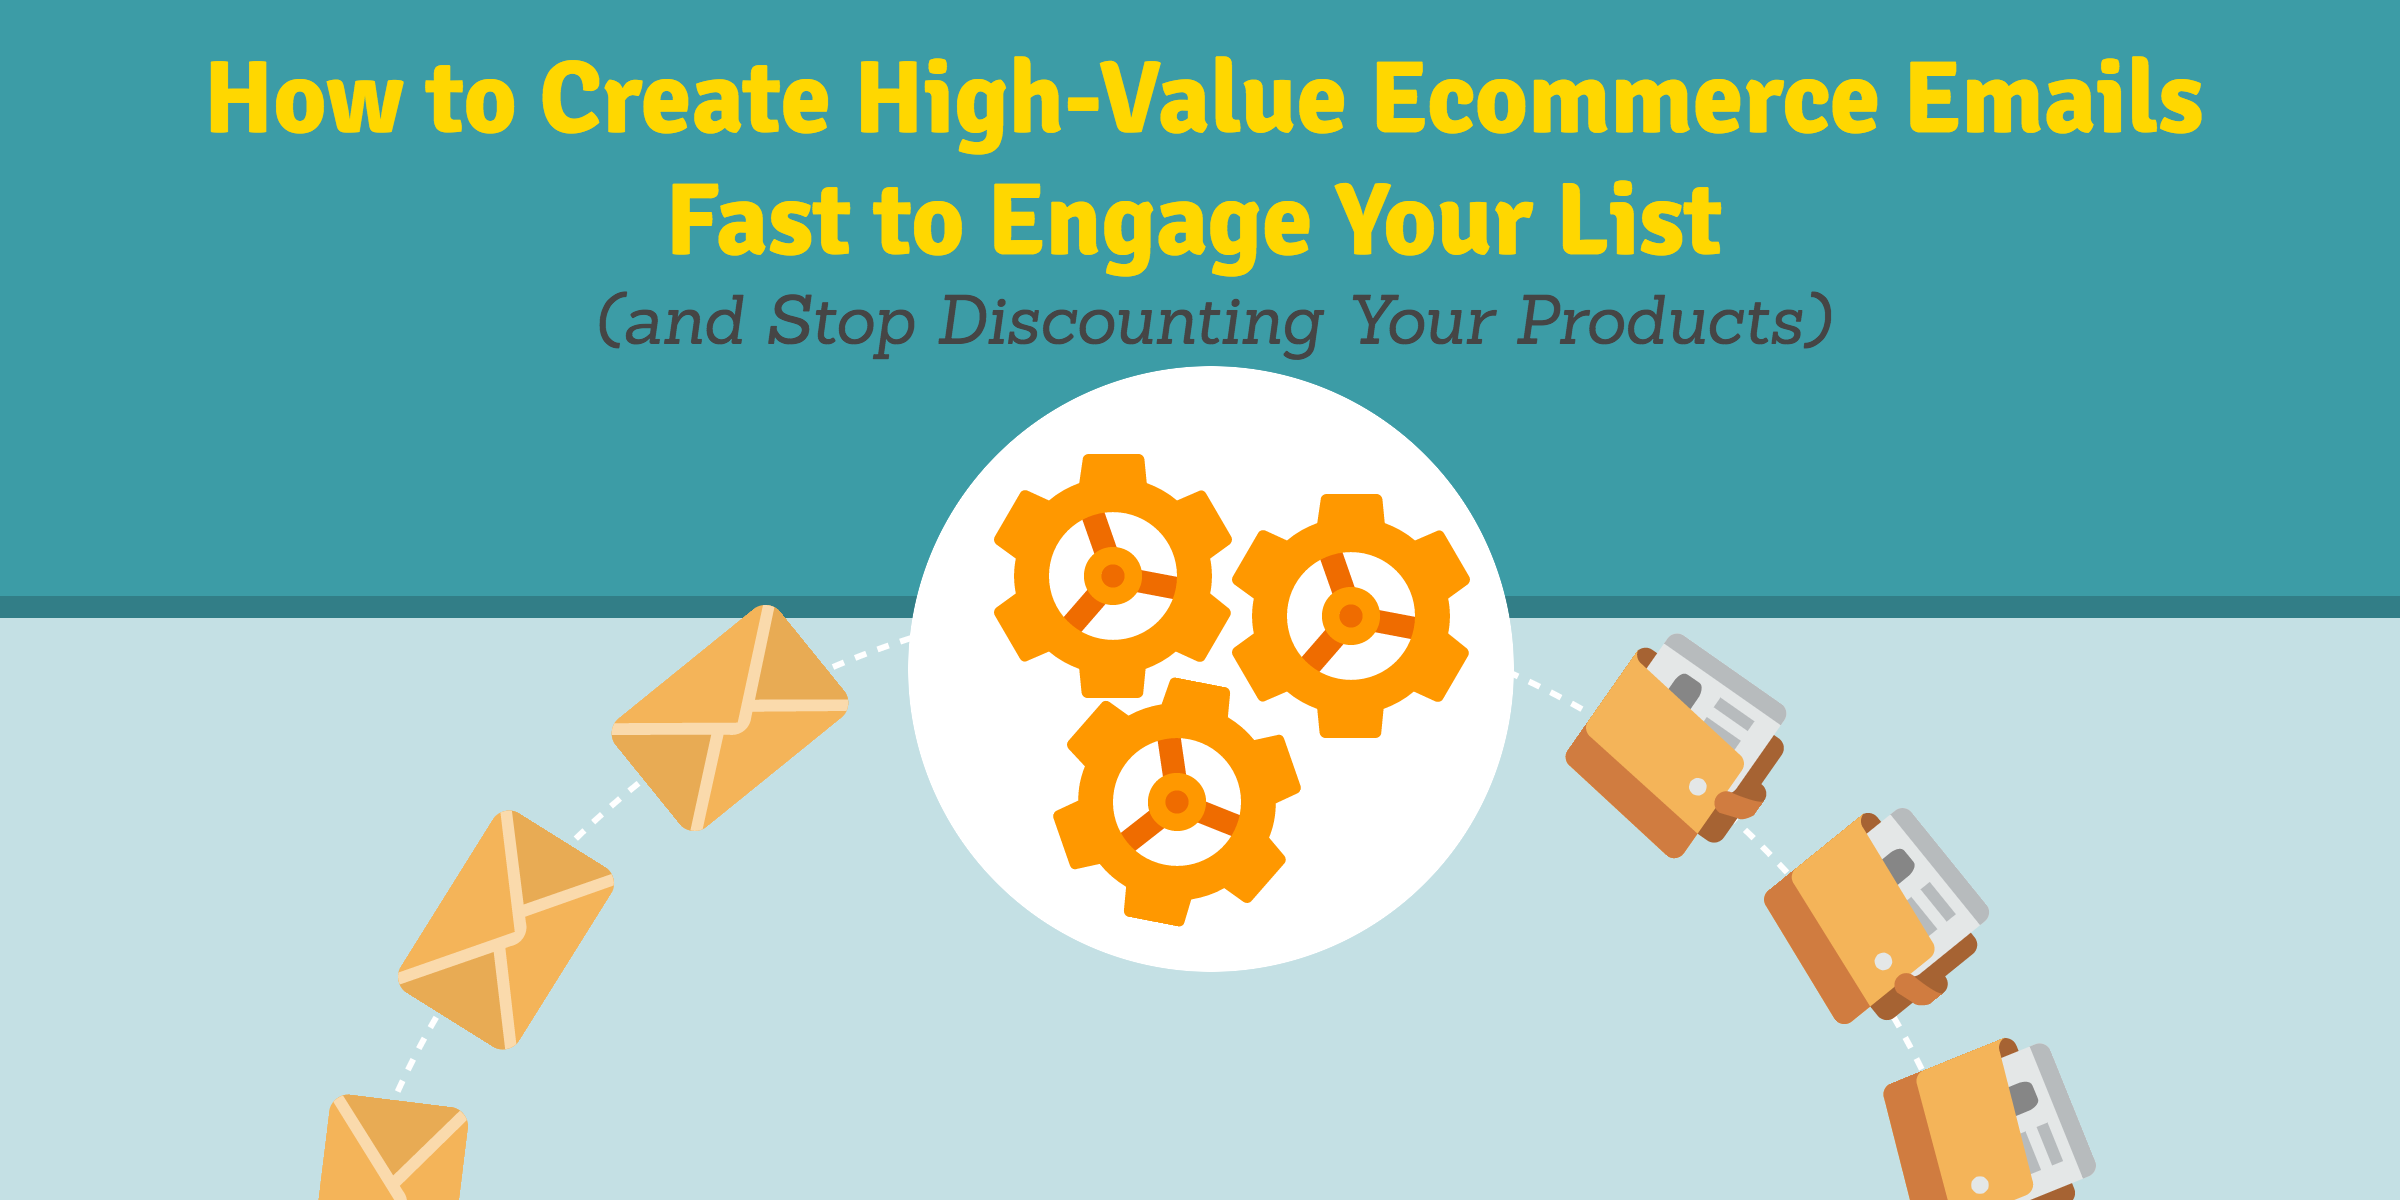 Creating engaging ecommerce emails